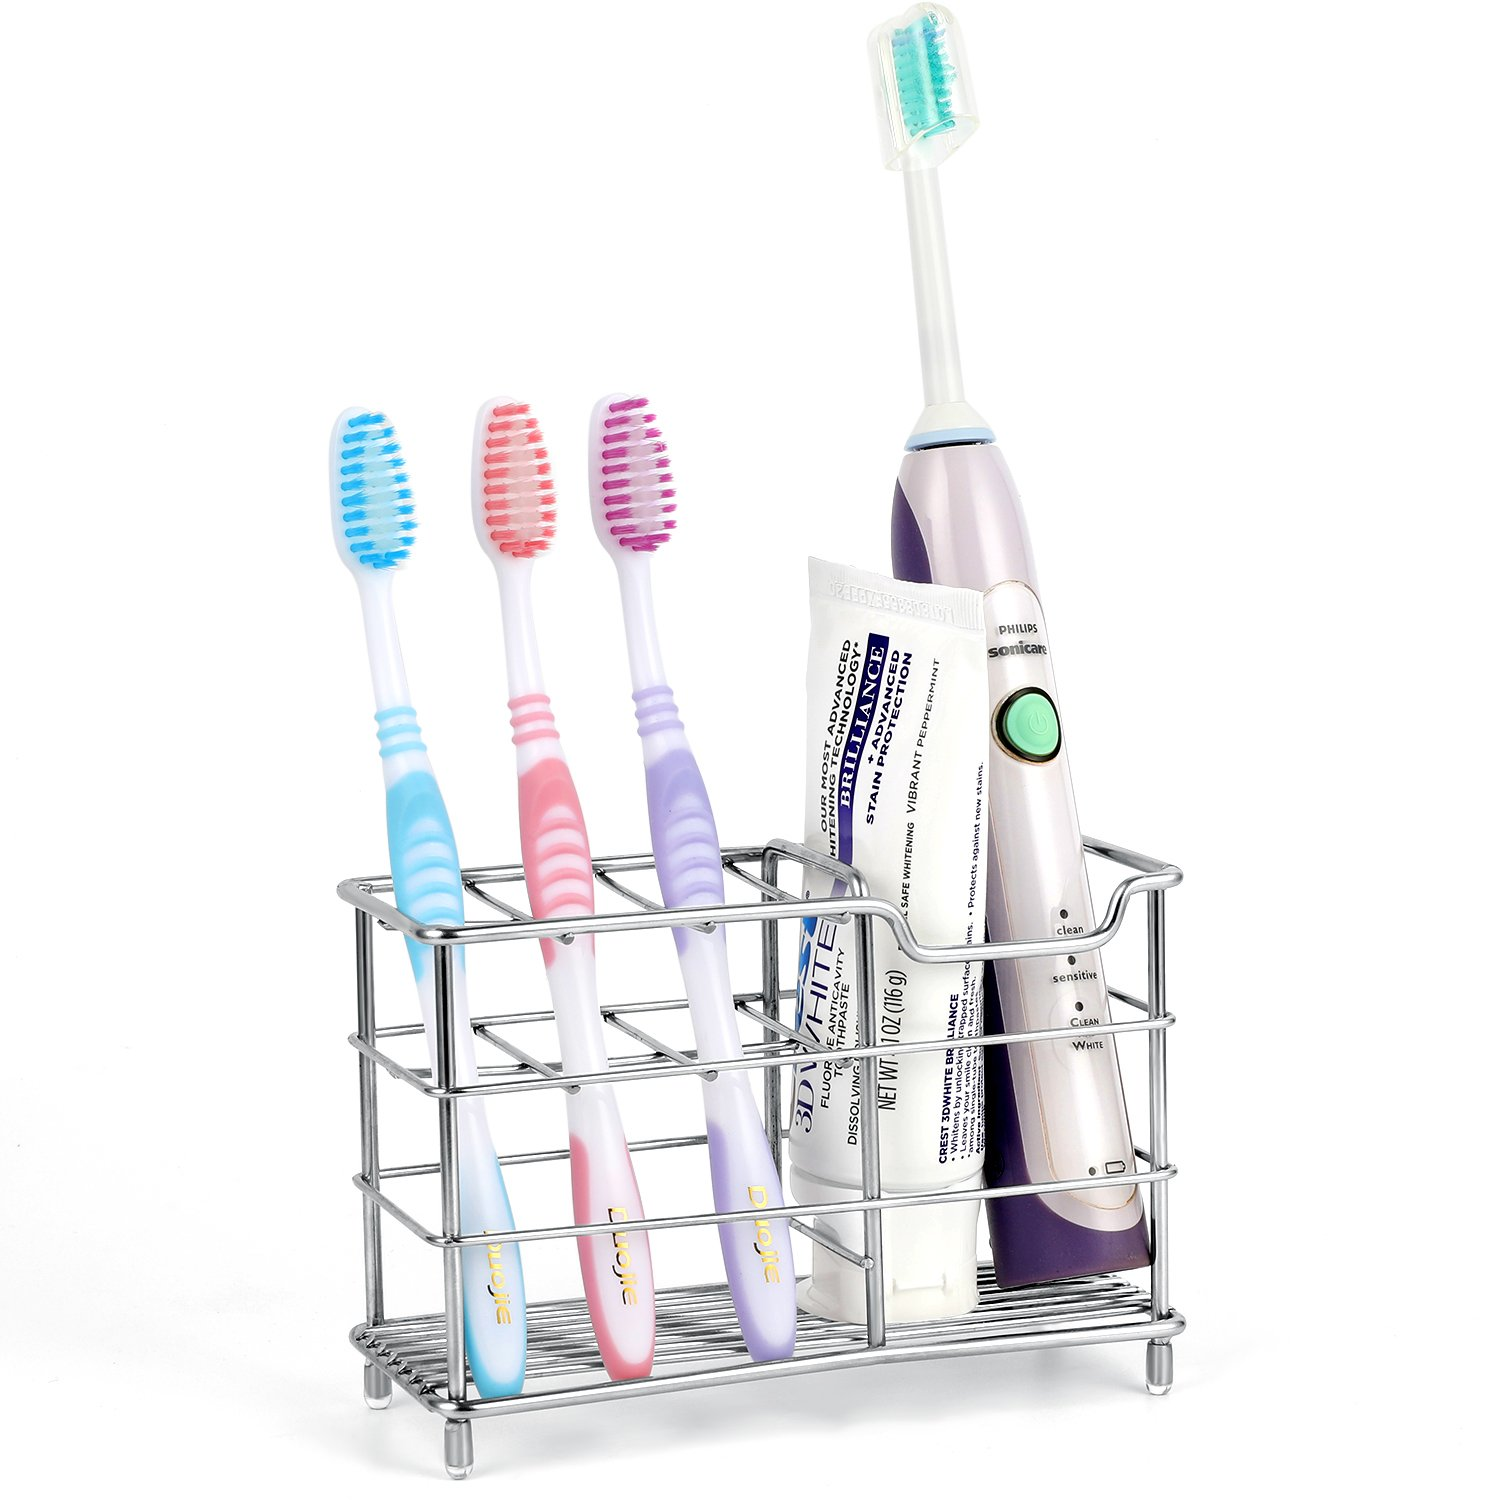 Stainless Steel Bathroom Toothbrush Holder Toothpaste Holder Stand Multi-Functional Stander (Silver-01) Housedeco